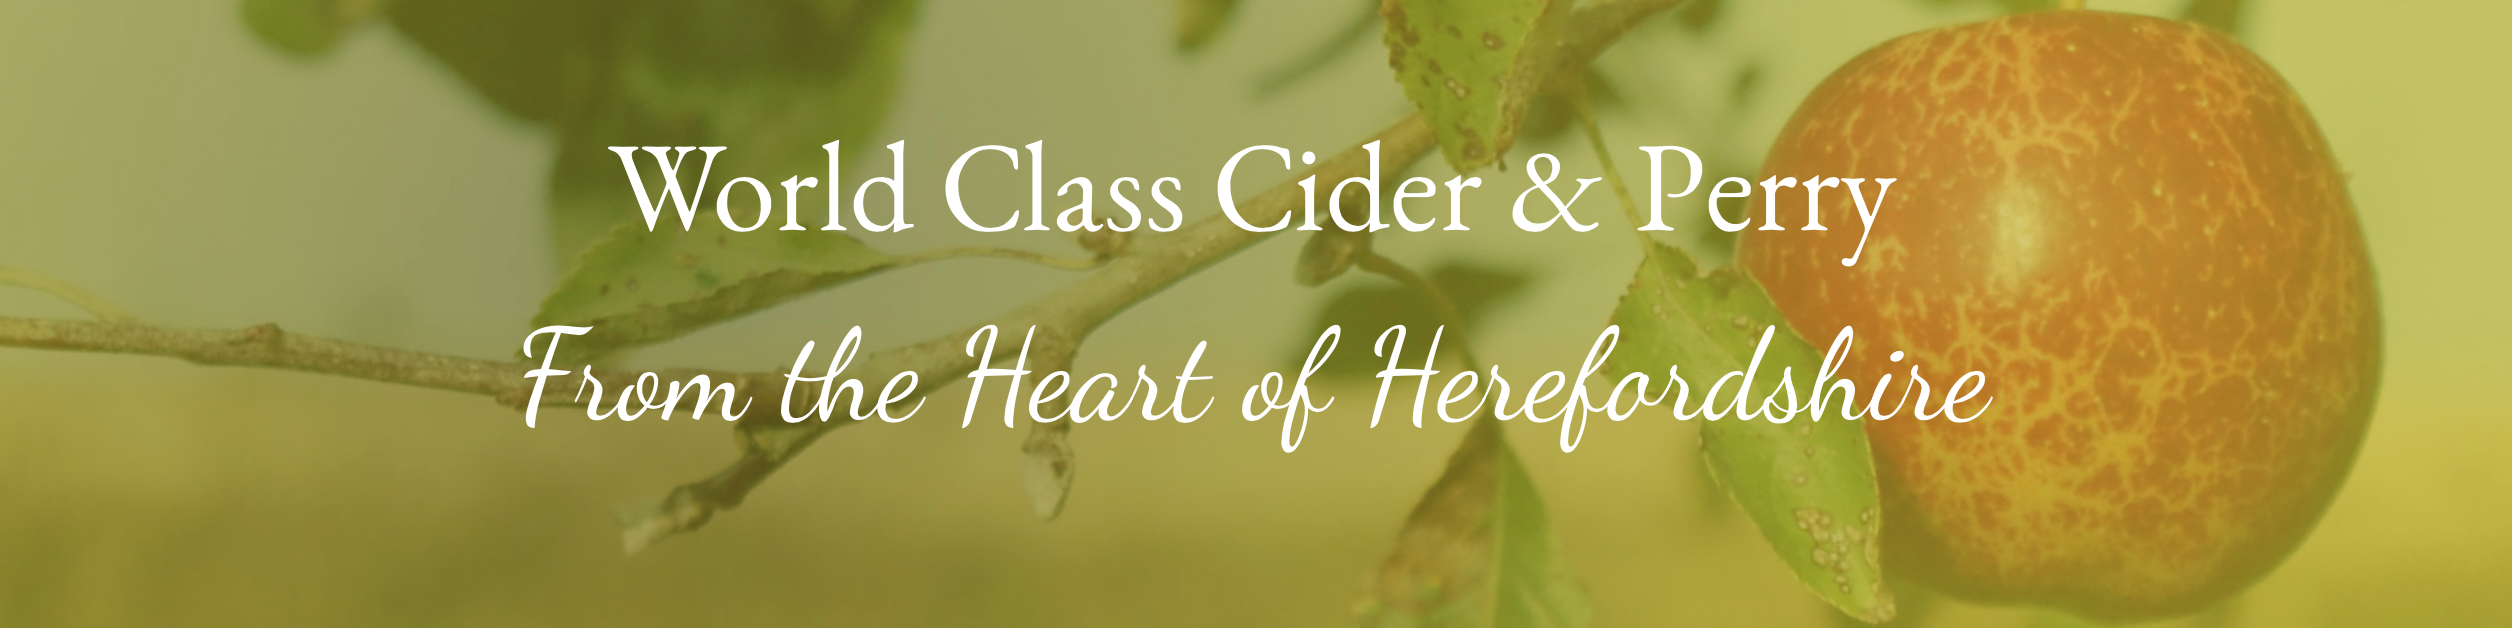 World Class Cider & Perry